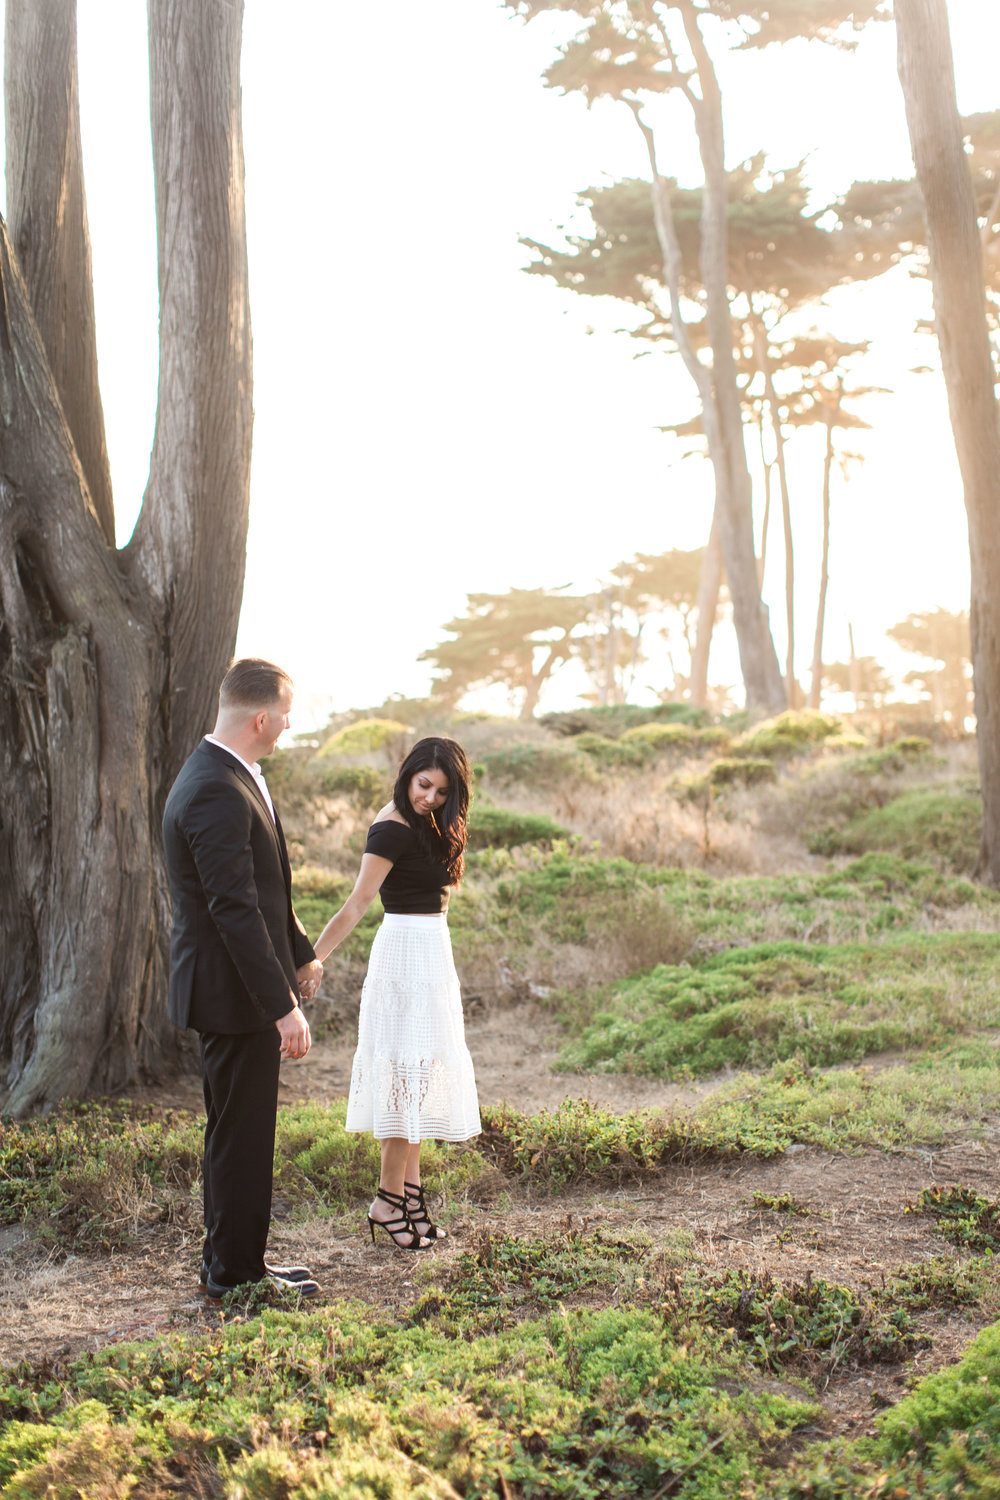 Suto-baths-engagement-photography-4.jpg